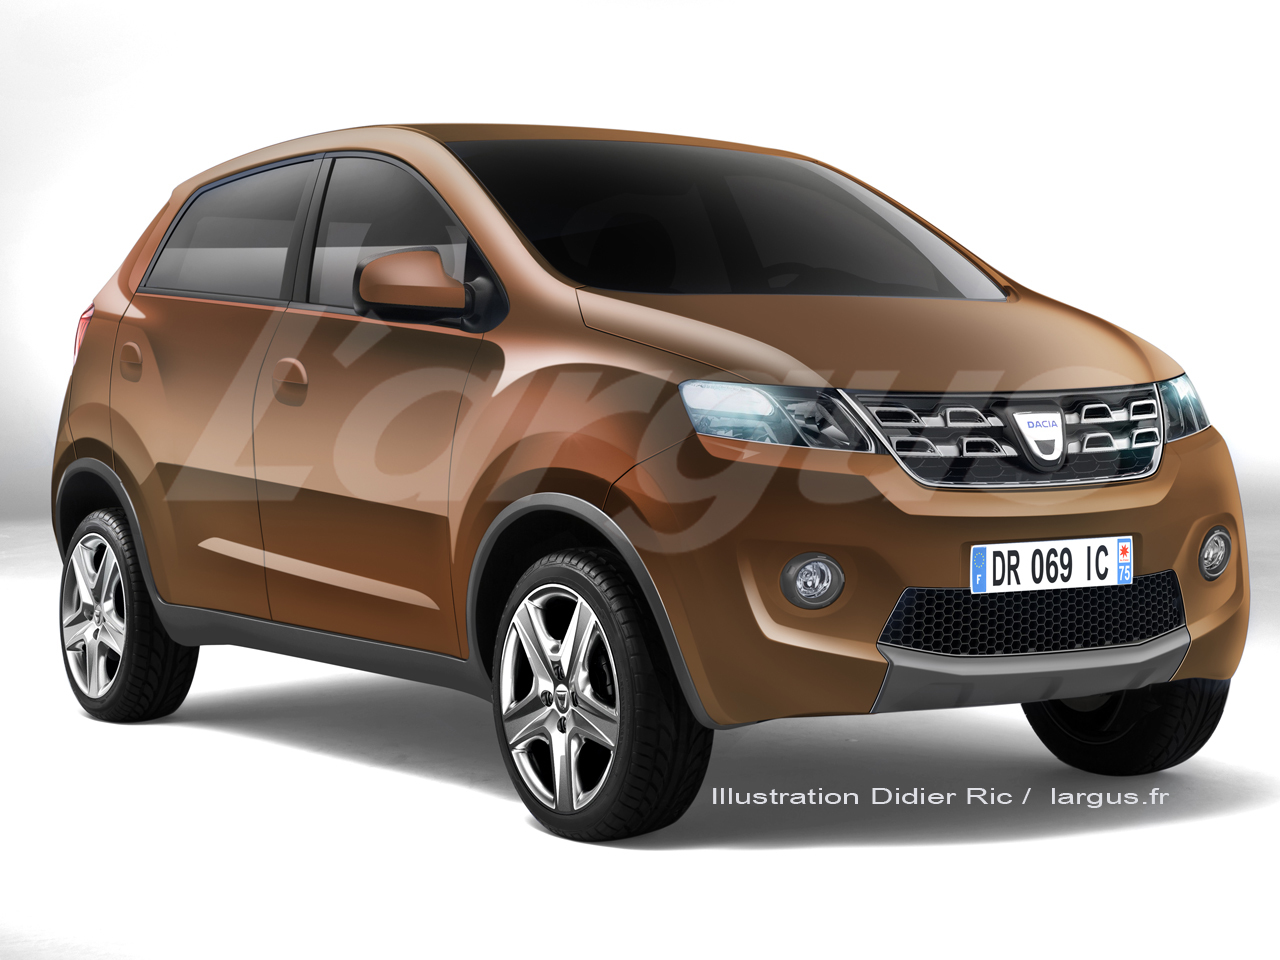 dacia kwid voici le nom de la future citadine dacia 5000 euros photo 1 l 39 argus. Black Bedroom Furniture Sets. Home Design Ideas